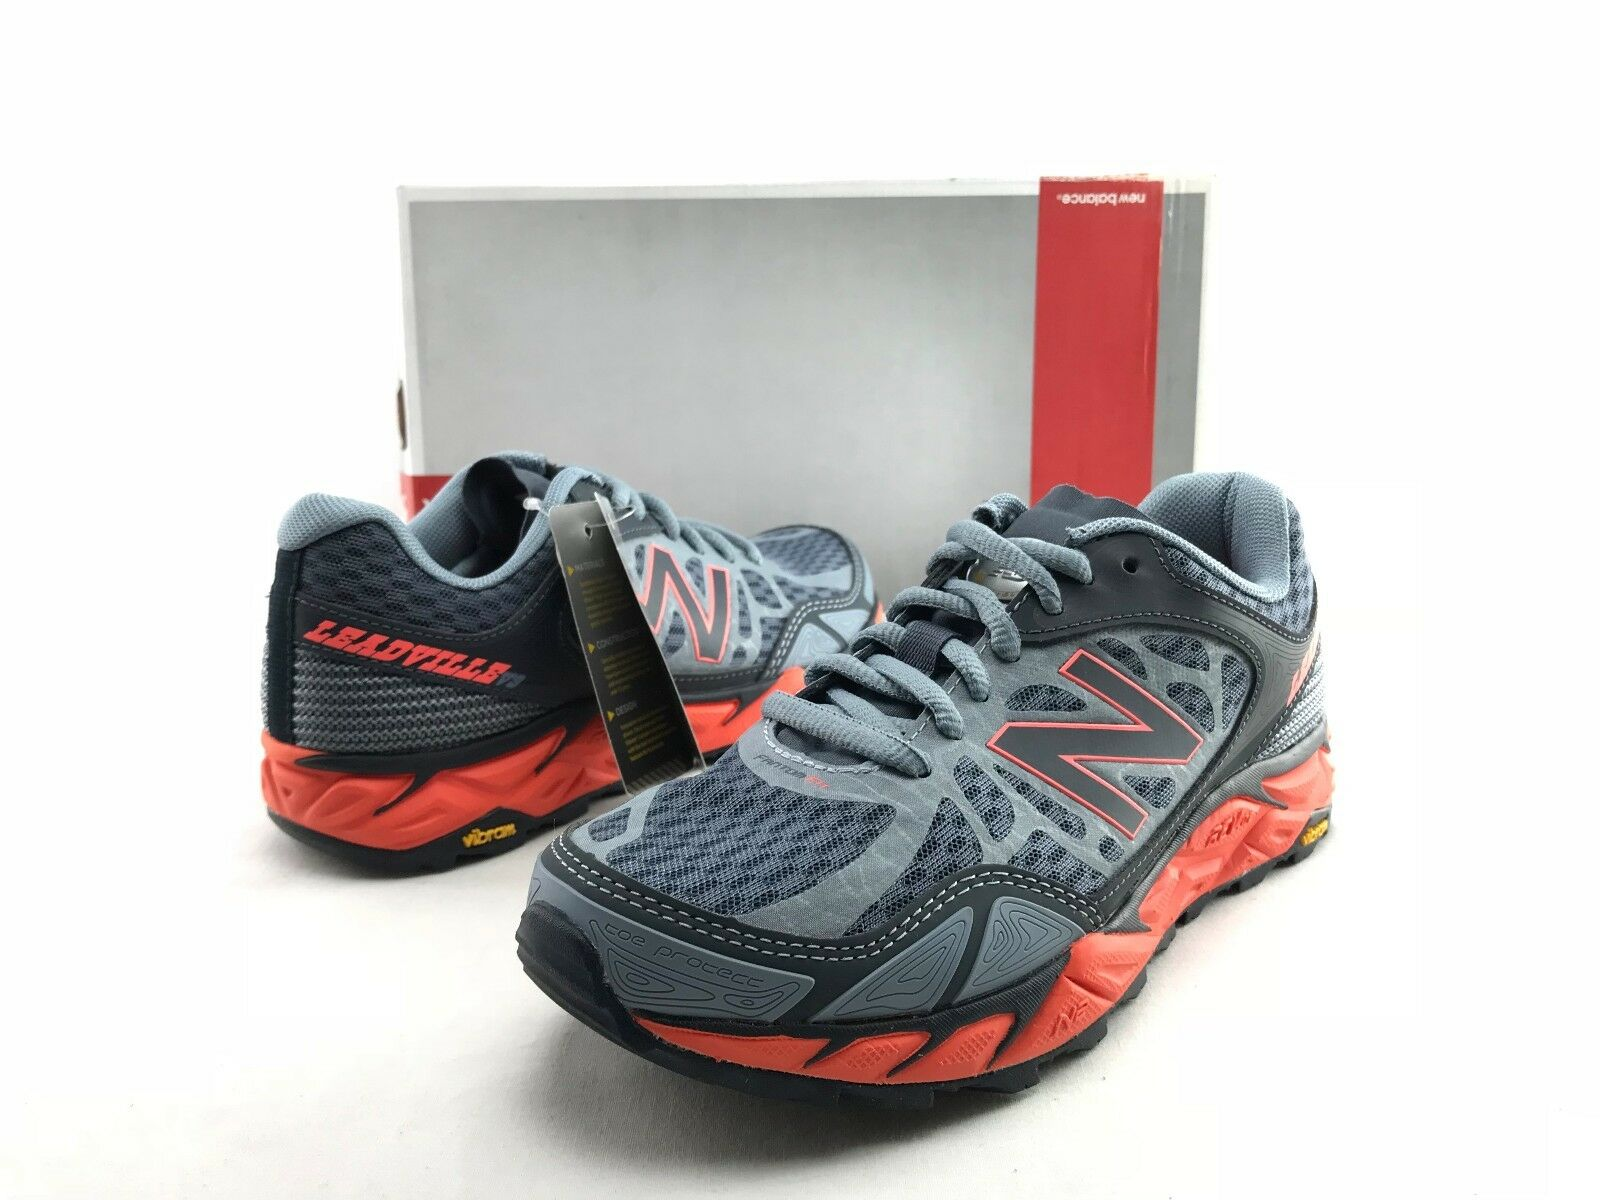 New Balance Leadville V9 Women's Grey Vibram Sole Running Sneakers US 5 B  B799